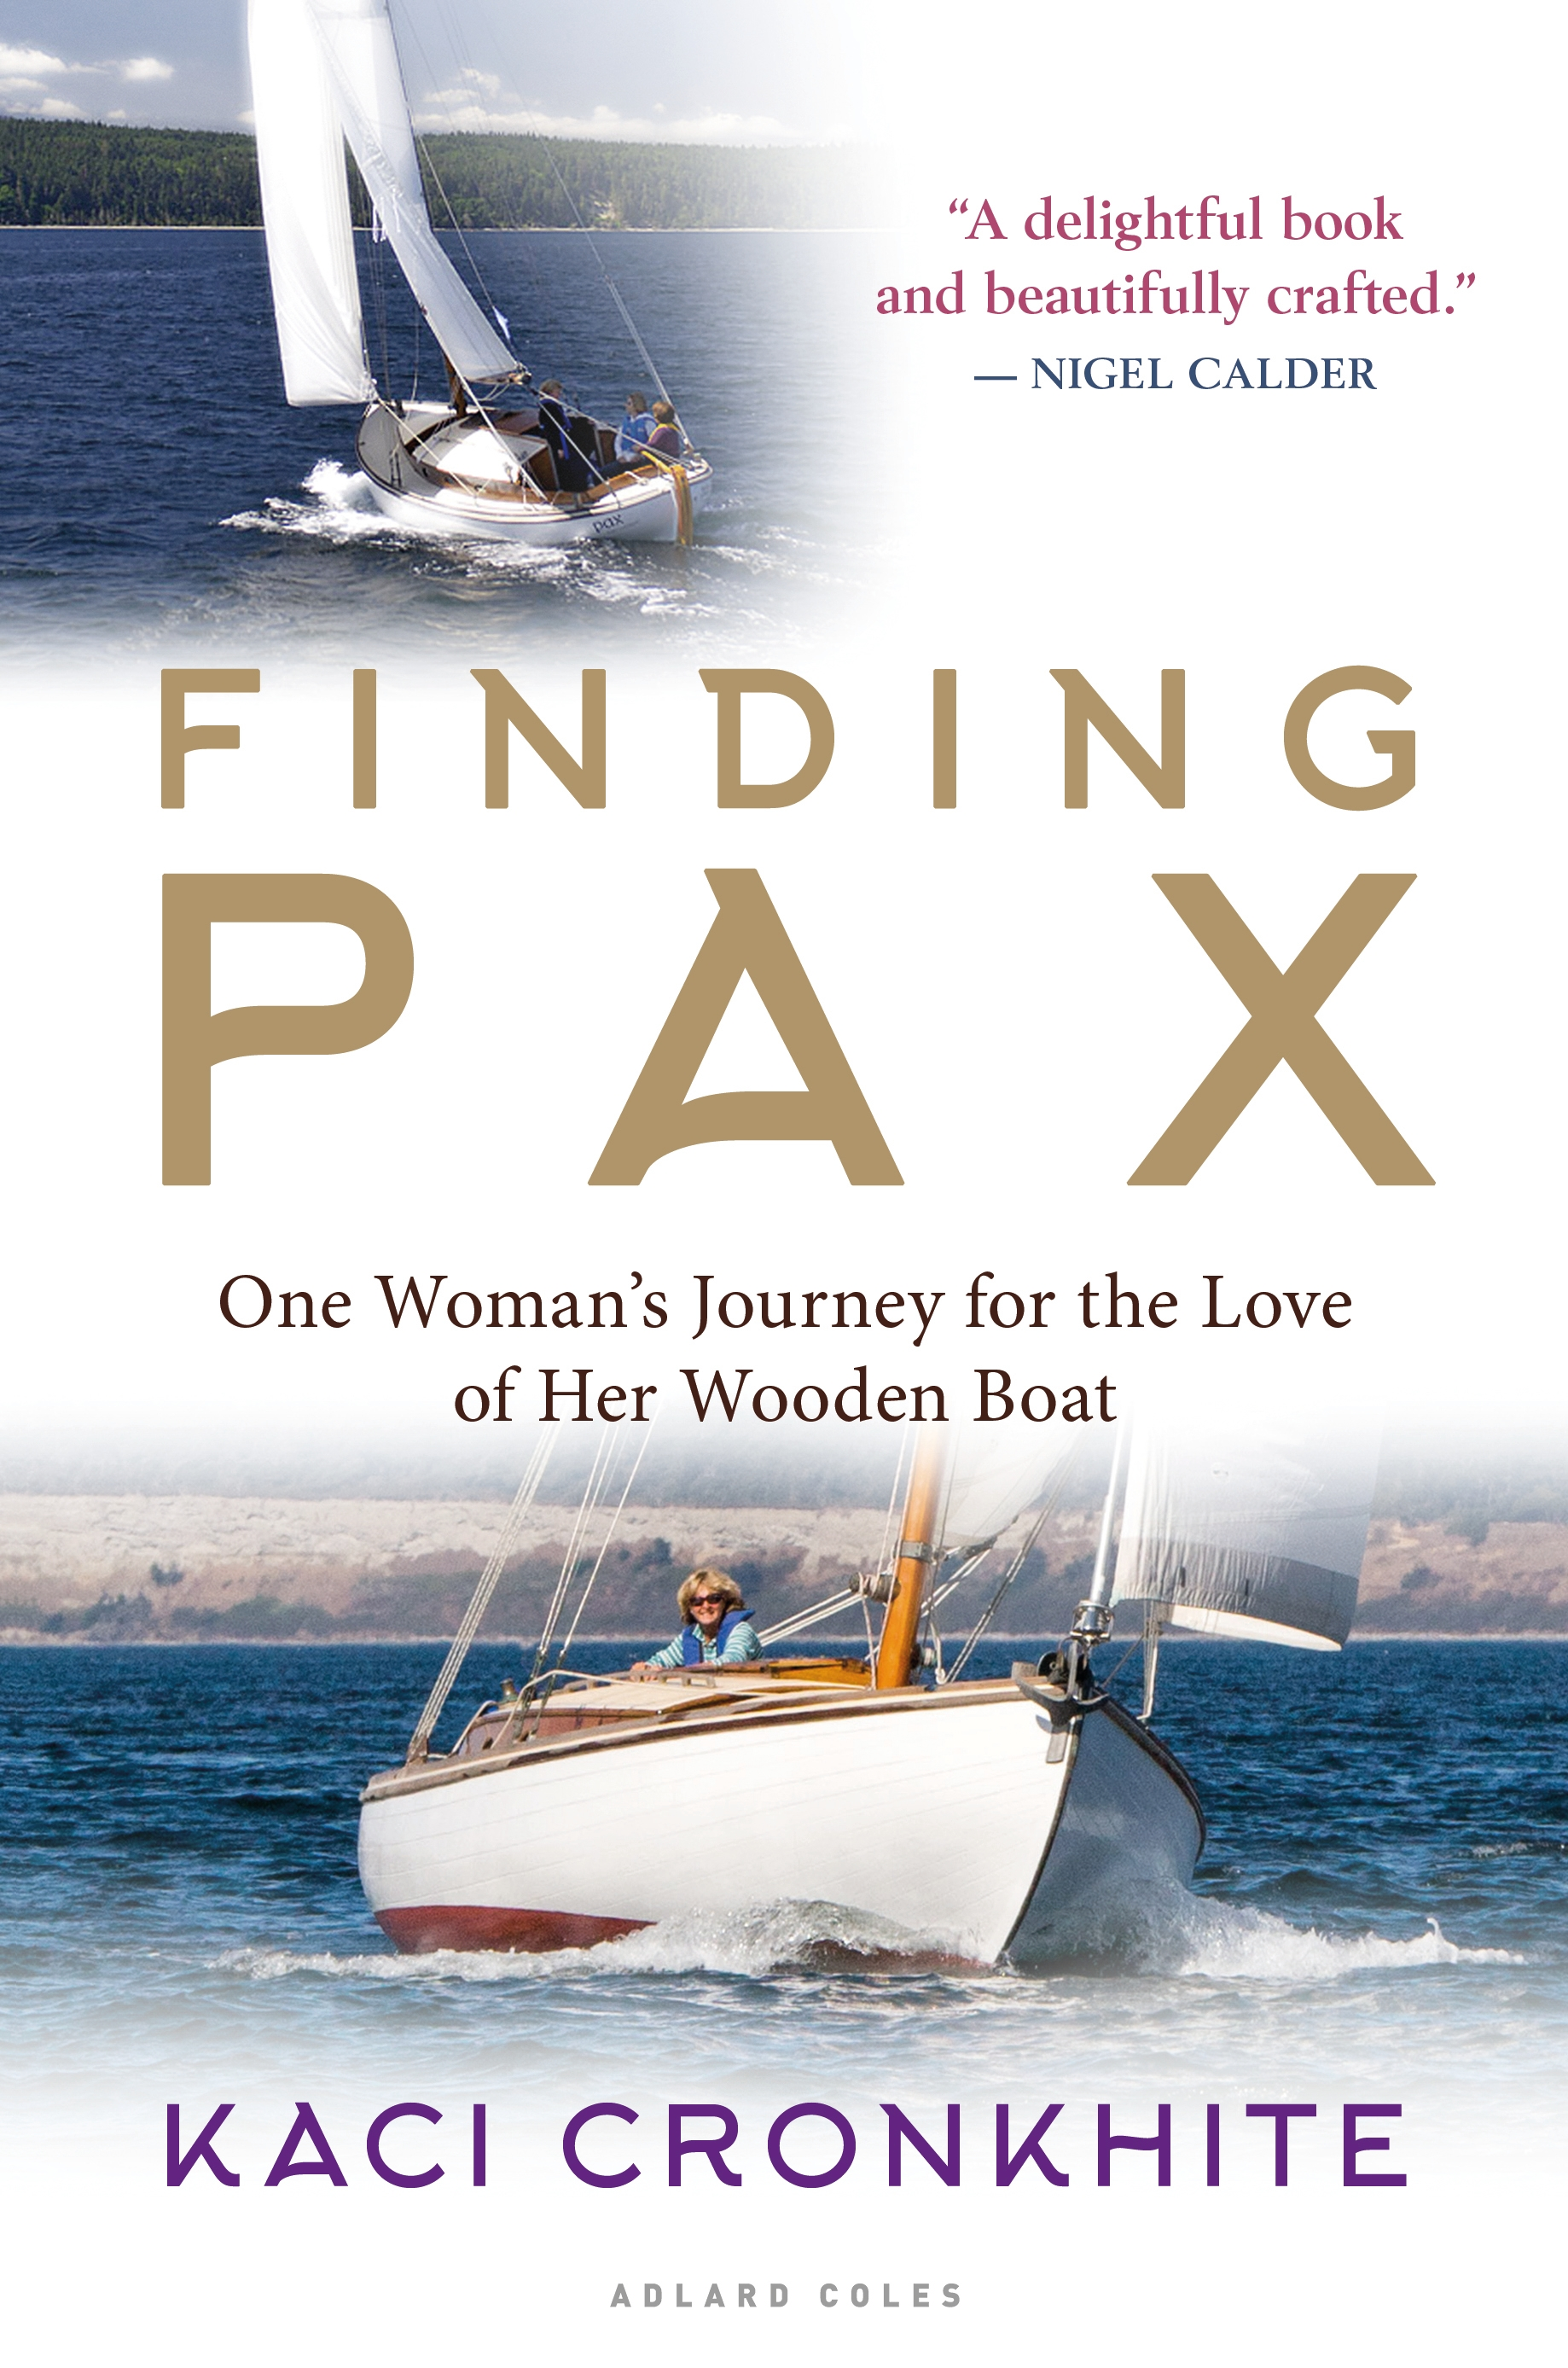 "Expanded Edition! Fall 2018 - Finding Pax is a story of discovery and reconnection like no other. Having fallen hopelessly in love with a 1930s Danish spidsgatter, a beautifully constructed 28 ft wooden double-ender, circumnavigator Kaci Cronkhite embarked on an international search to unravel the mystery of the boat's past, and discovered the many lives Pax touched since she first hit the water in 1936.The search took her to remote harbors of British Columbia, to a 3-generation marina in the Port of Los Angeles', and to the harbors, boatshops, archives, and homes of generations in Denmark. What she found changed some families' history. ""By finding her story, you've given us ours,"" said the granddaughter of the boat's builder, Karl Thomsen. The writing is poetic, spare, and full of wisdom."